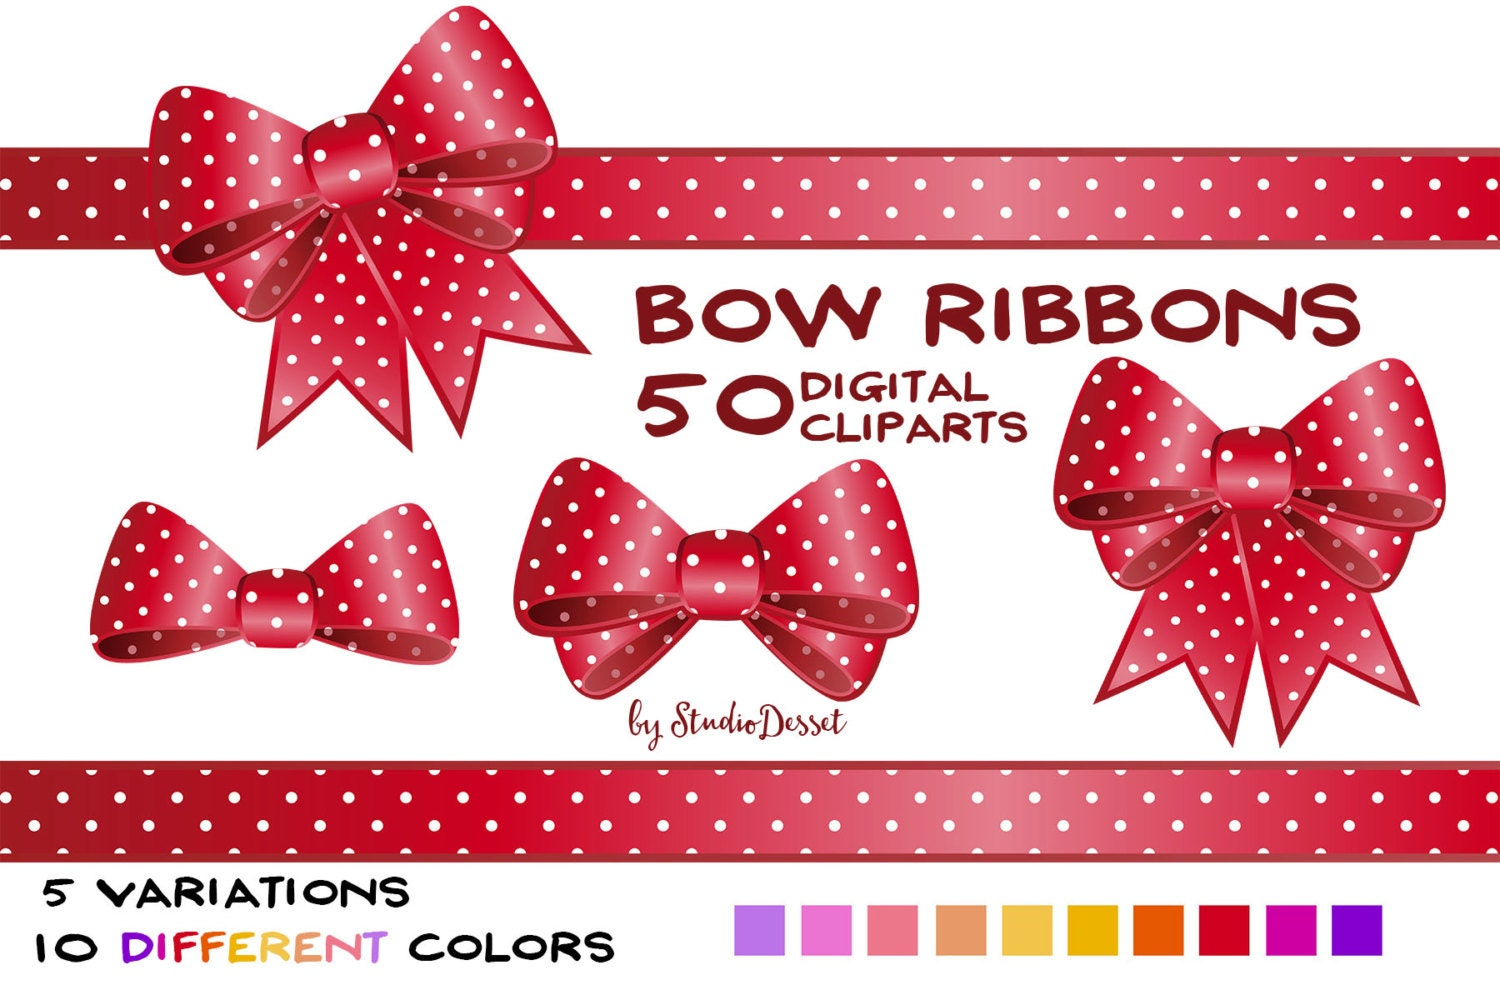 Bow ribbon cliparts gift ribbons in red pink and yellow polka dot this is a digital file negle Gallery